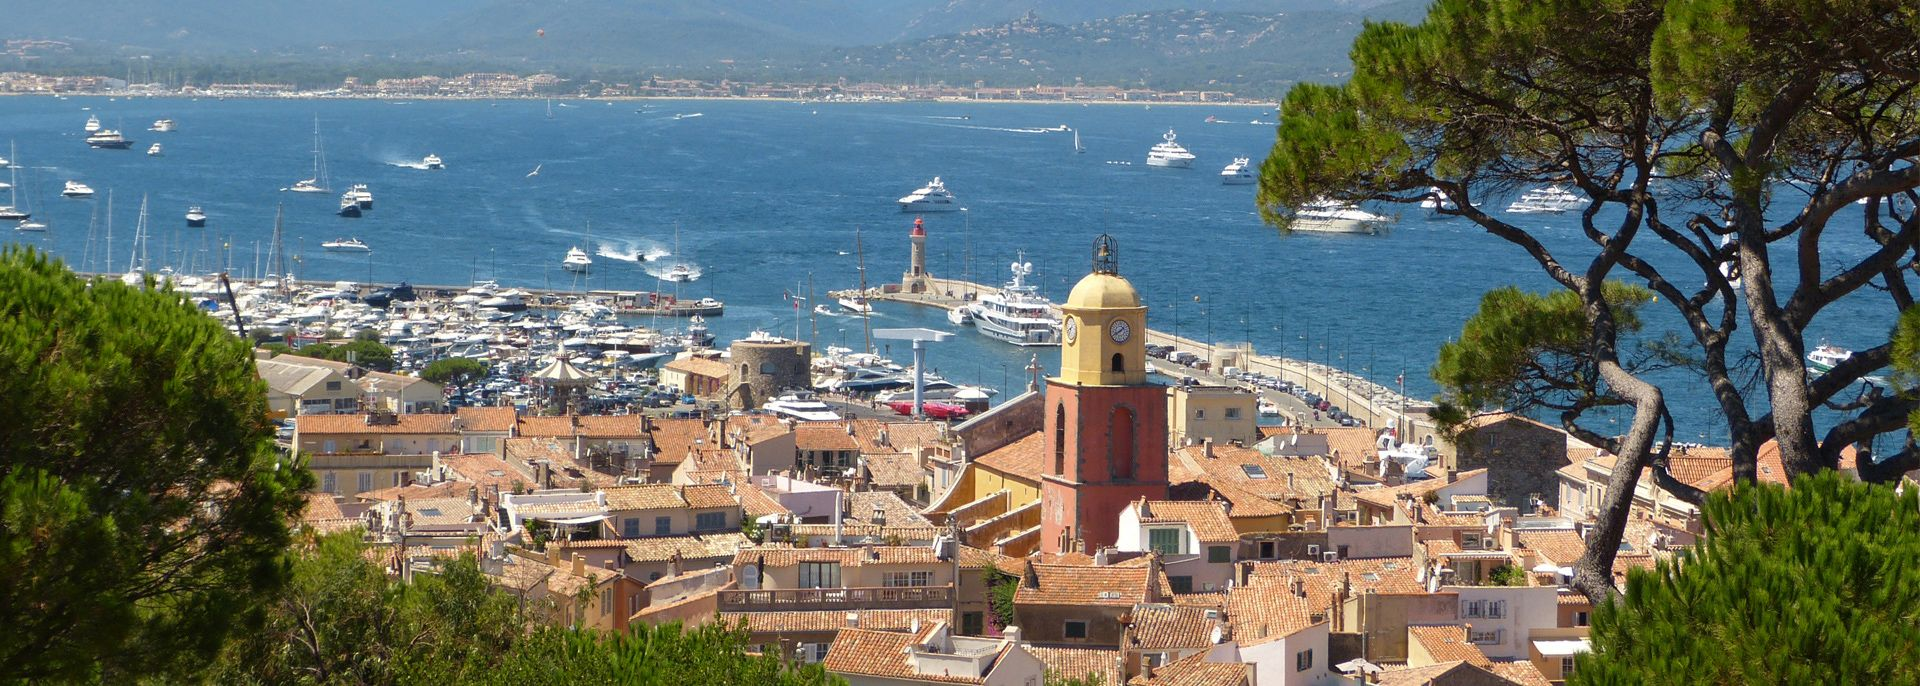 Lions Club Saint-Tropez